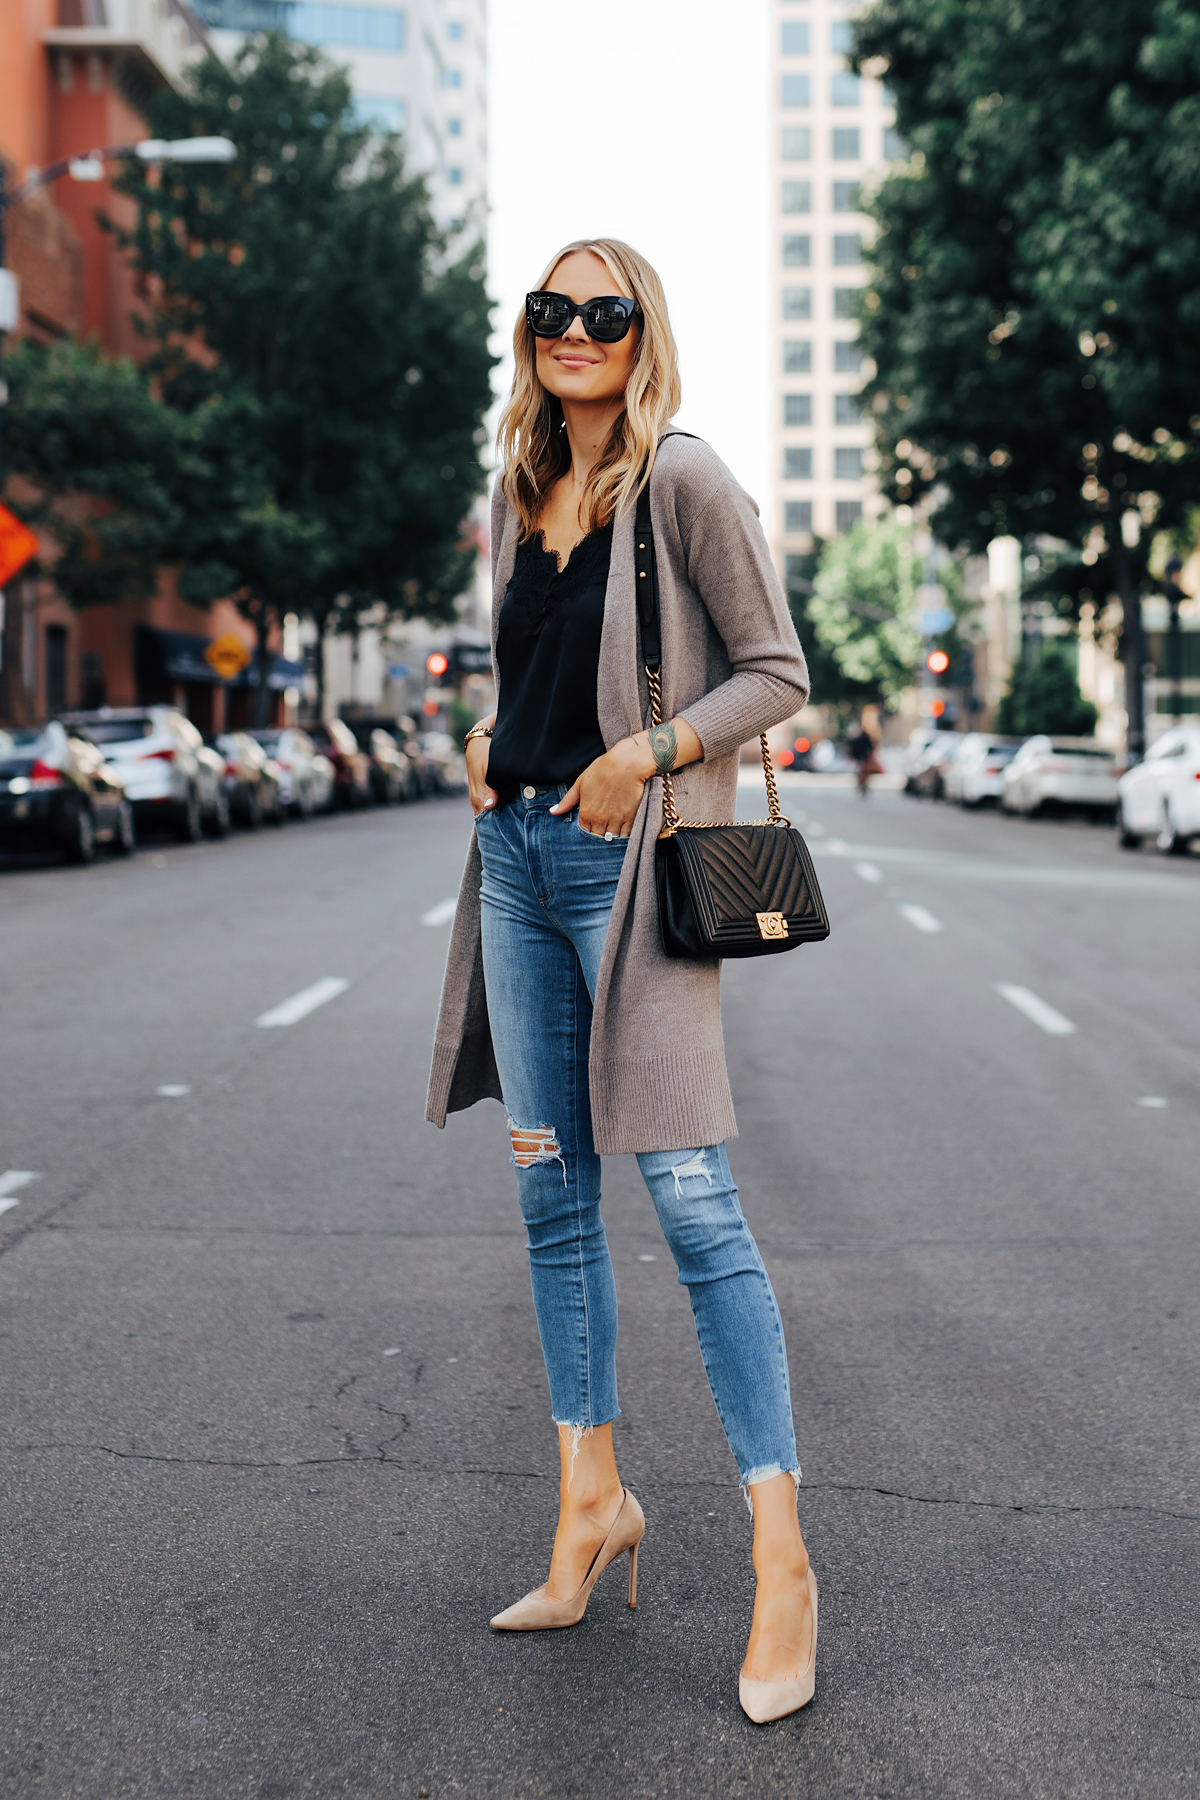 Fashion Jackson Wearing Nordstrom Anniversary Sale Halogen Cashmere Cardgian Black Lace Cami Paige Hoxton Skinny Jeans Chanel Black Boy Bag Nude Pumps 1